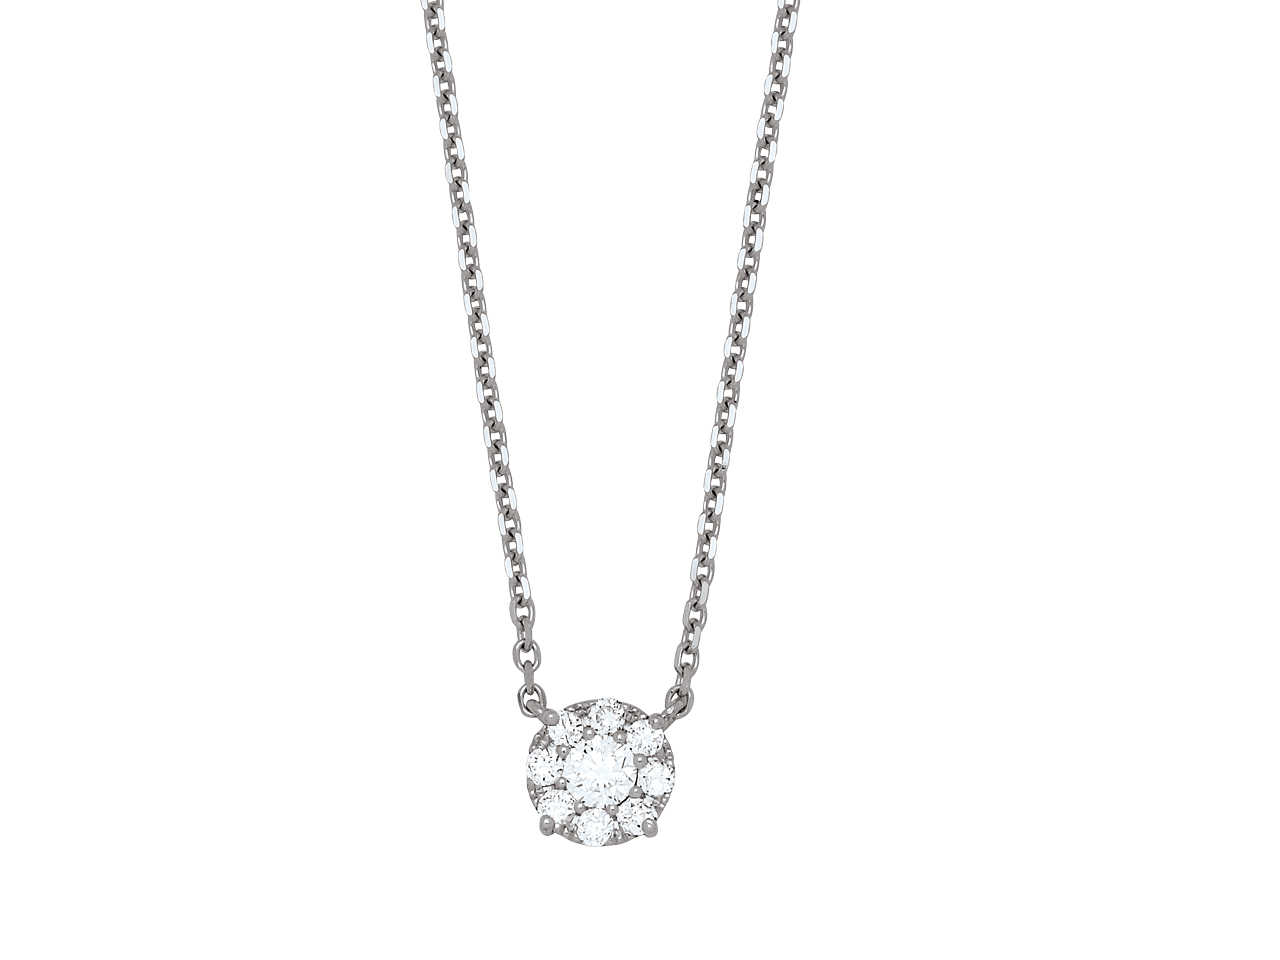 Collier Diamants serti illusion, motif fixe, 0,30ct, Or ris 18k, 42-45 cm